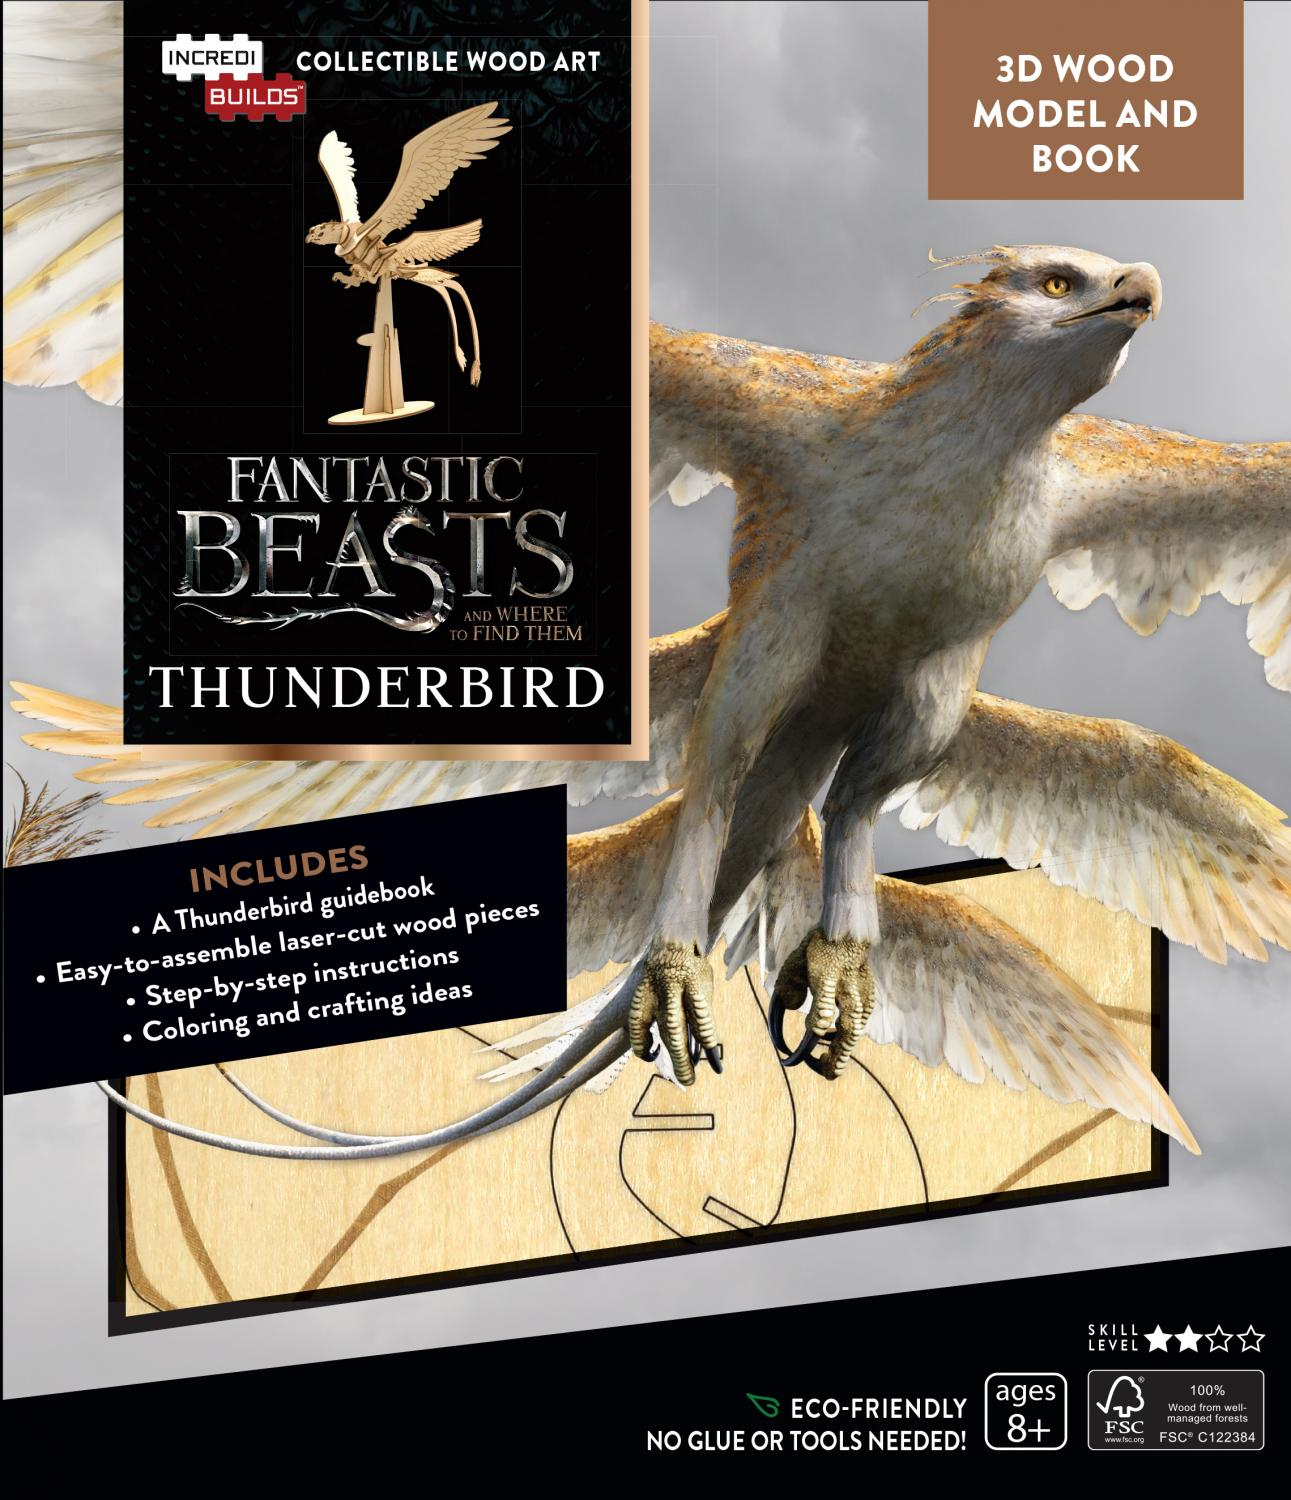 Fantastic Beasts and Where to Find Them: Thunderbird Book and 3D Wood Model